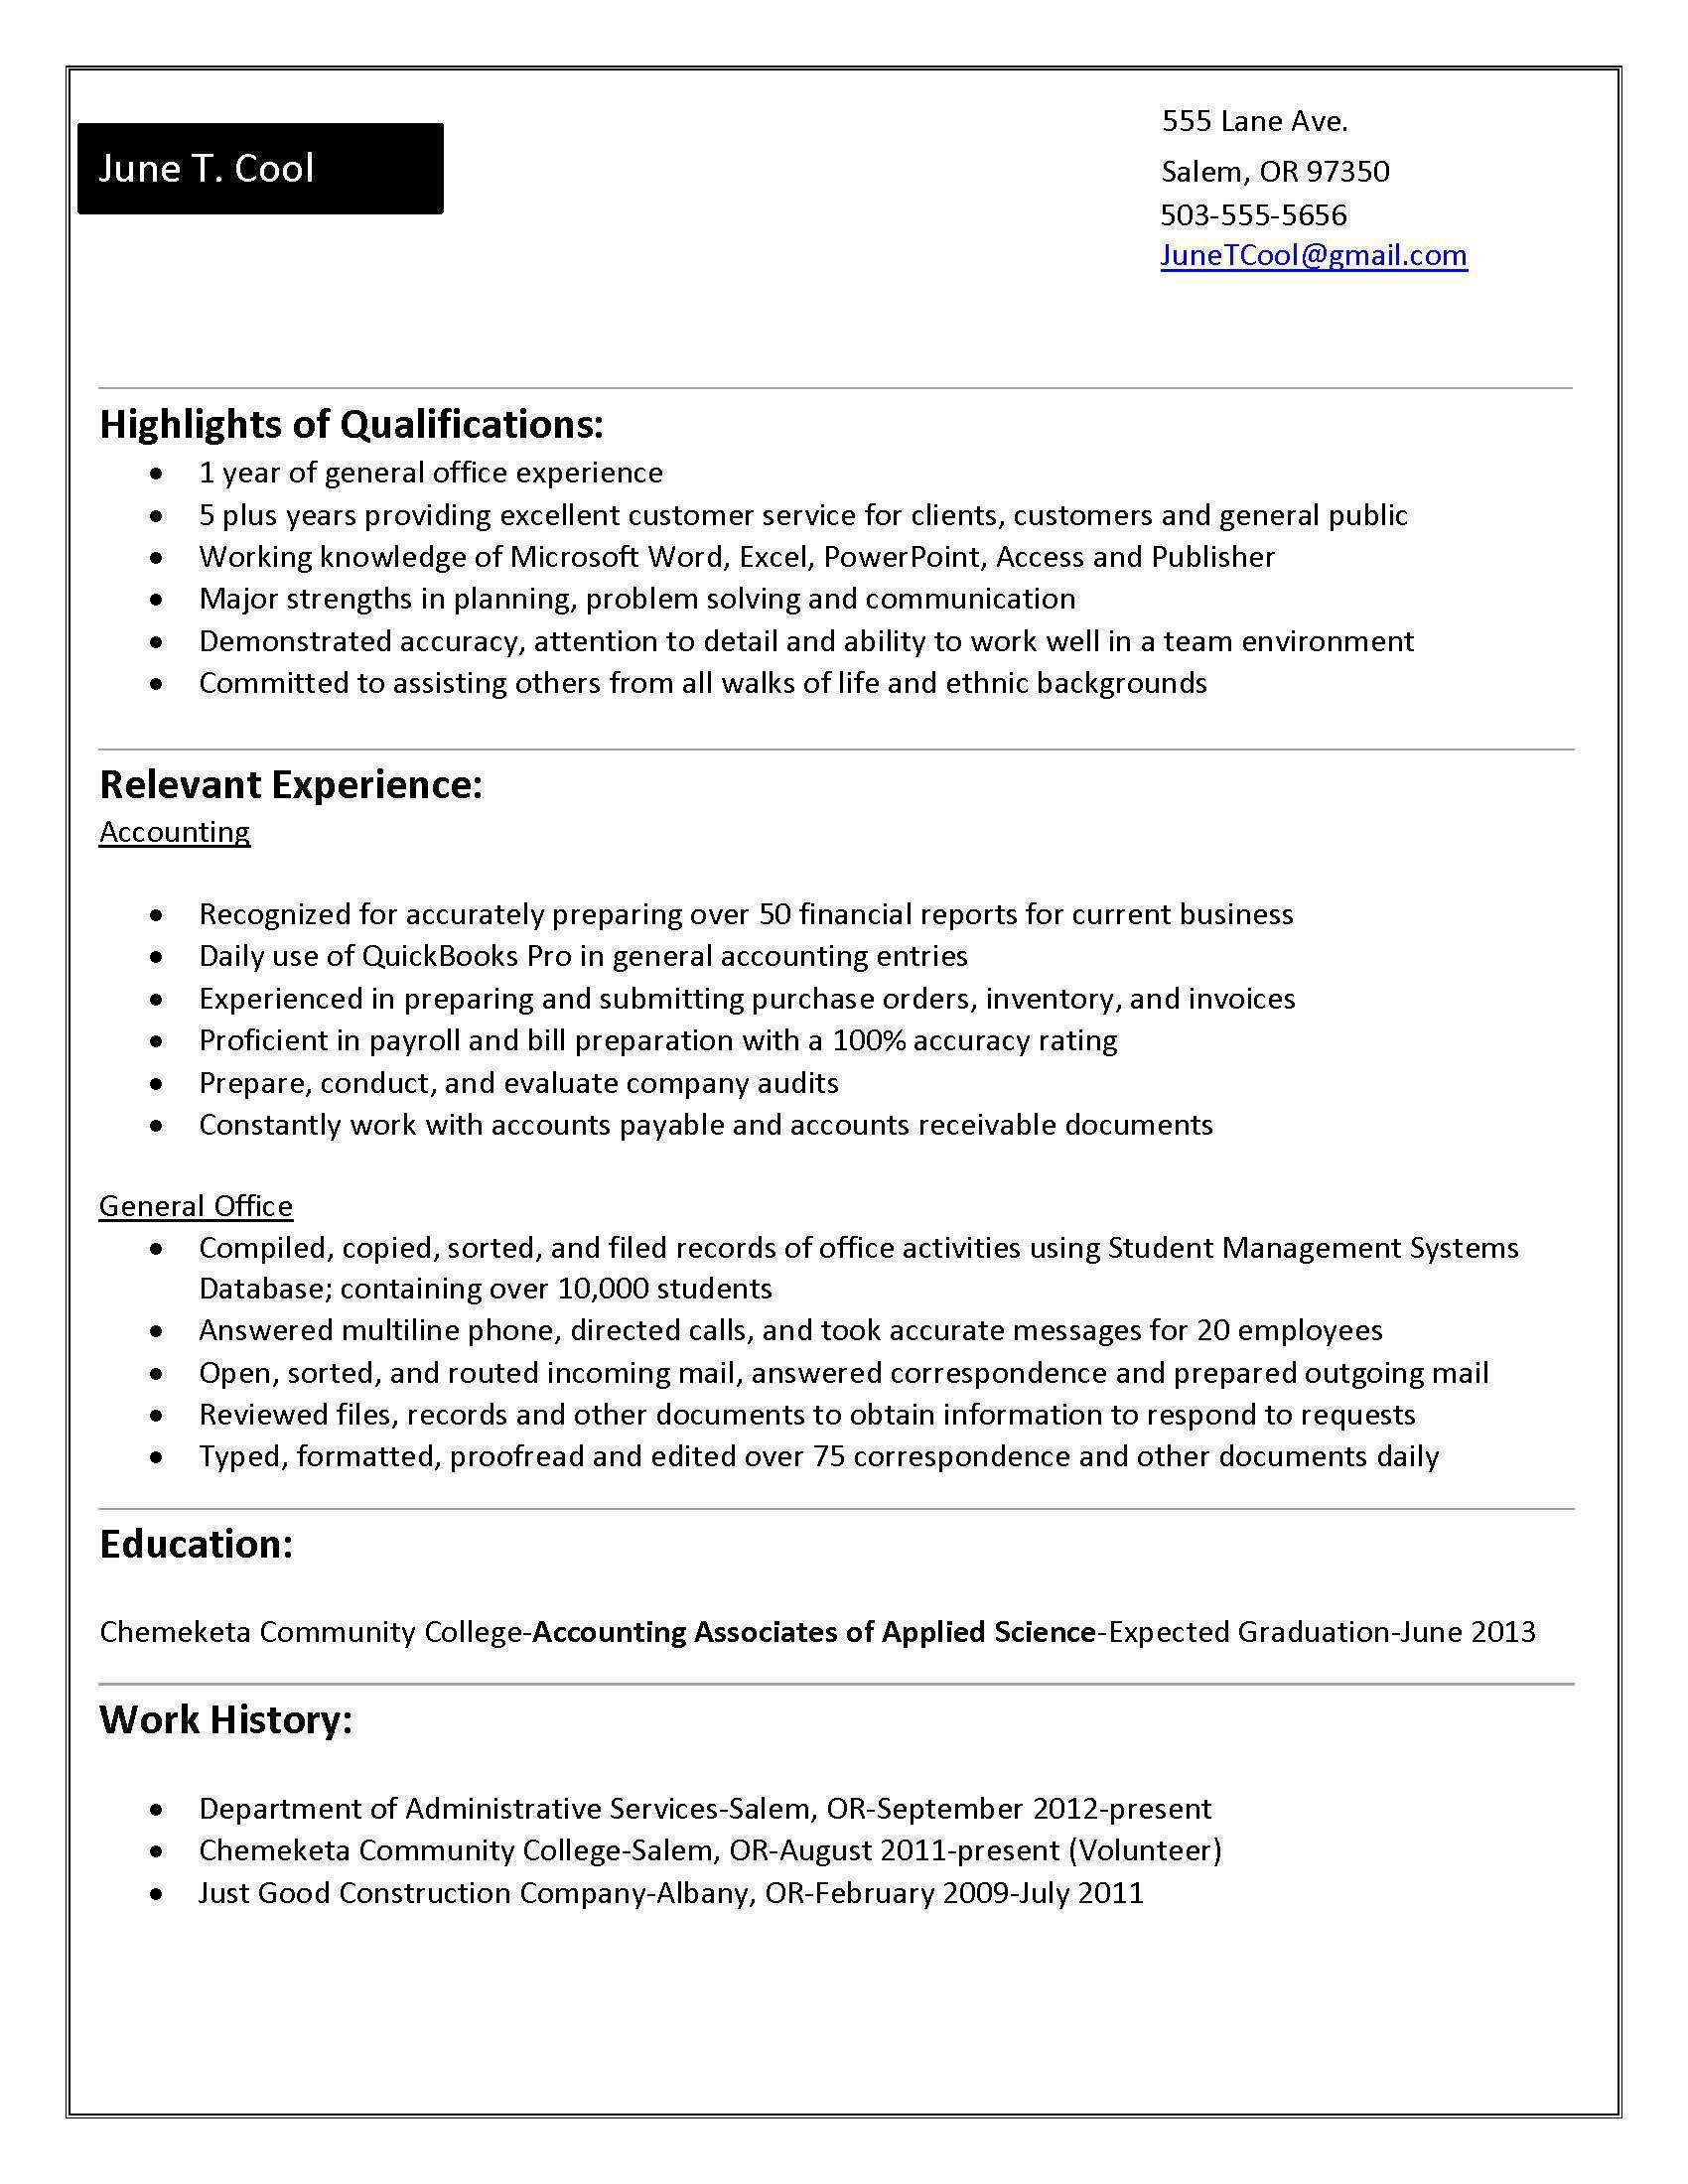 resume format for 5 years experience in accounting phd candidate cv template download best freshers customer relations specialist